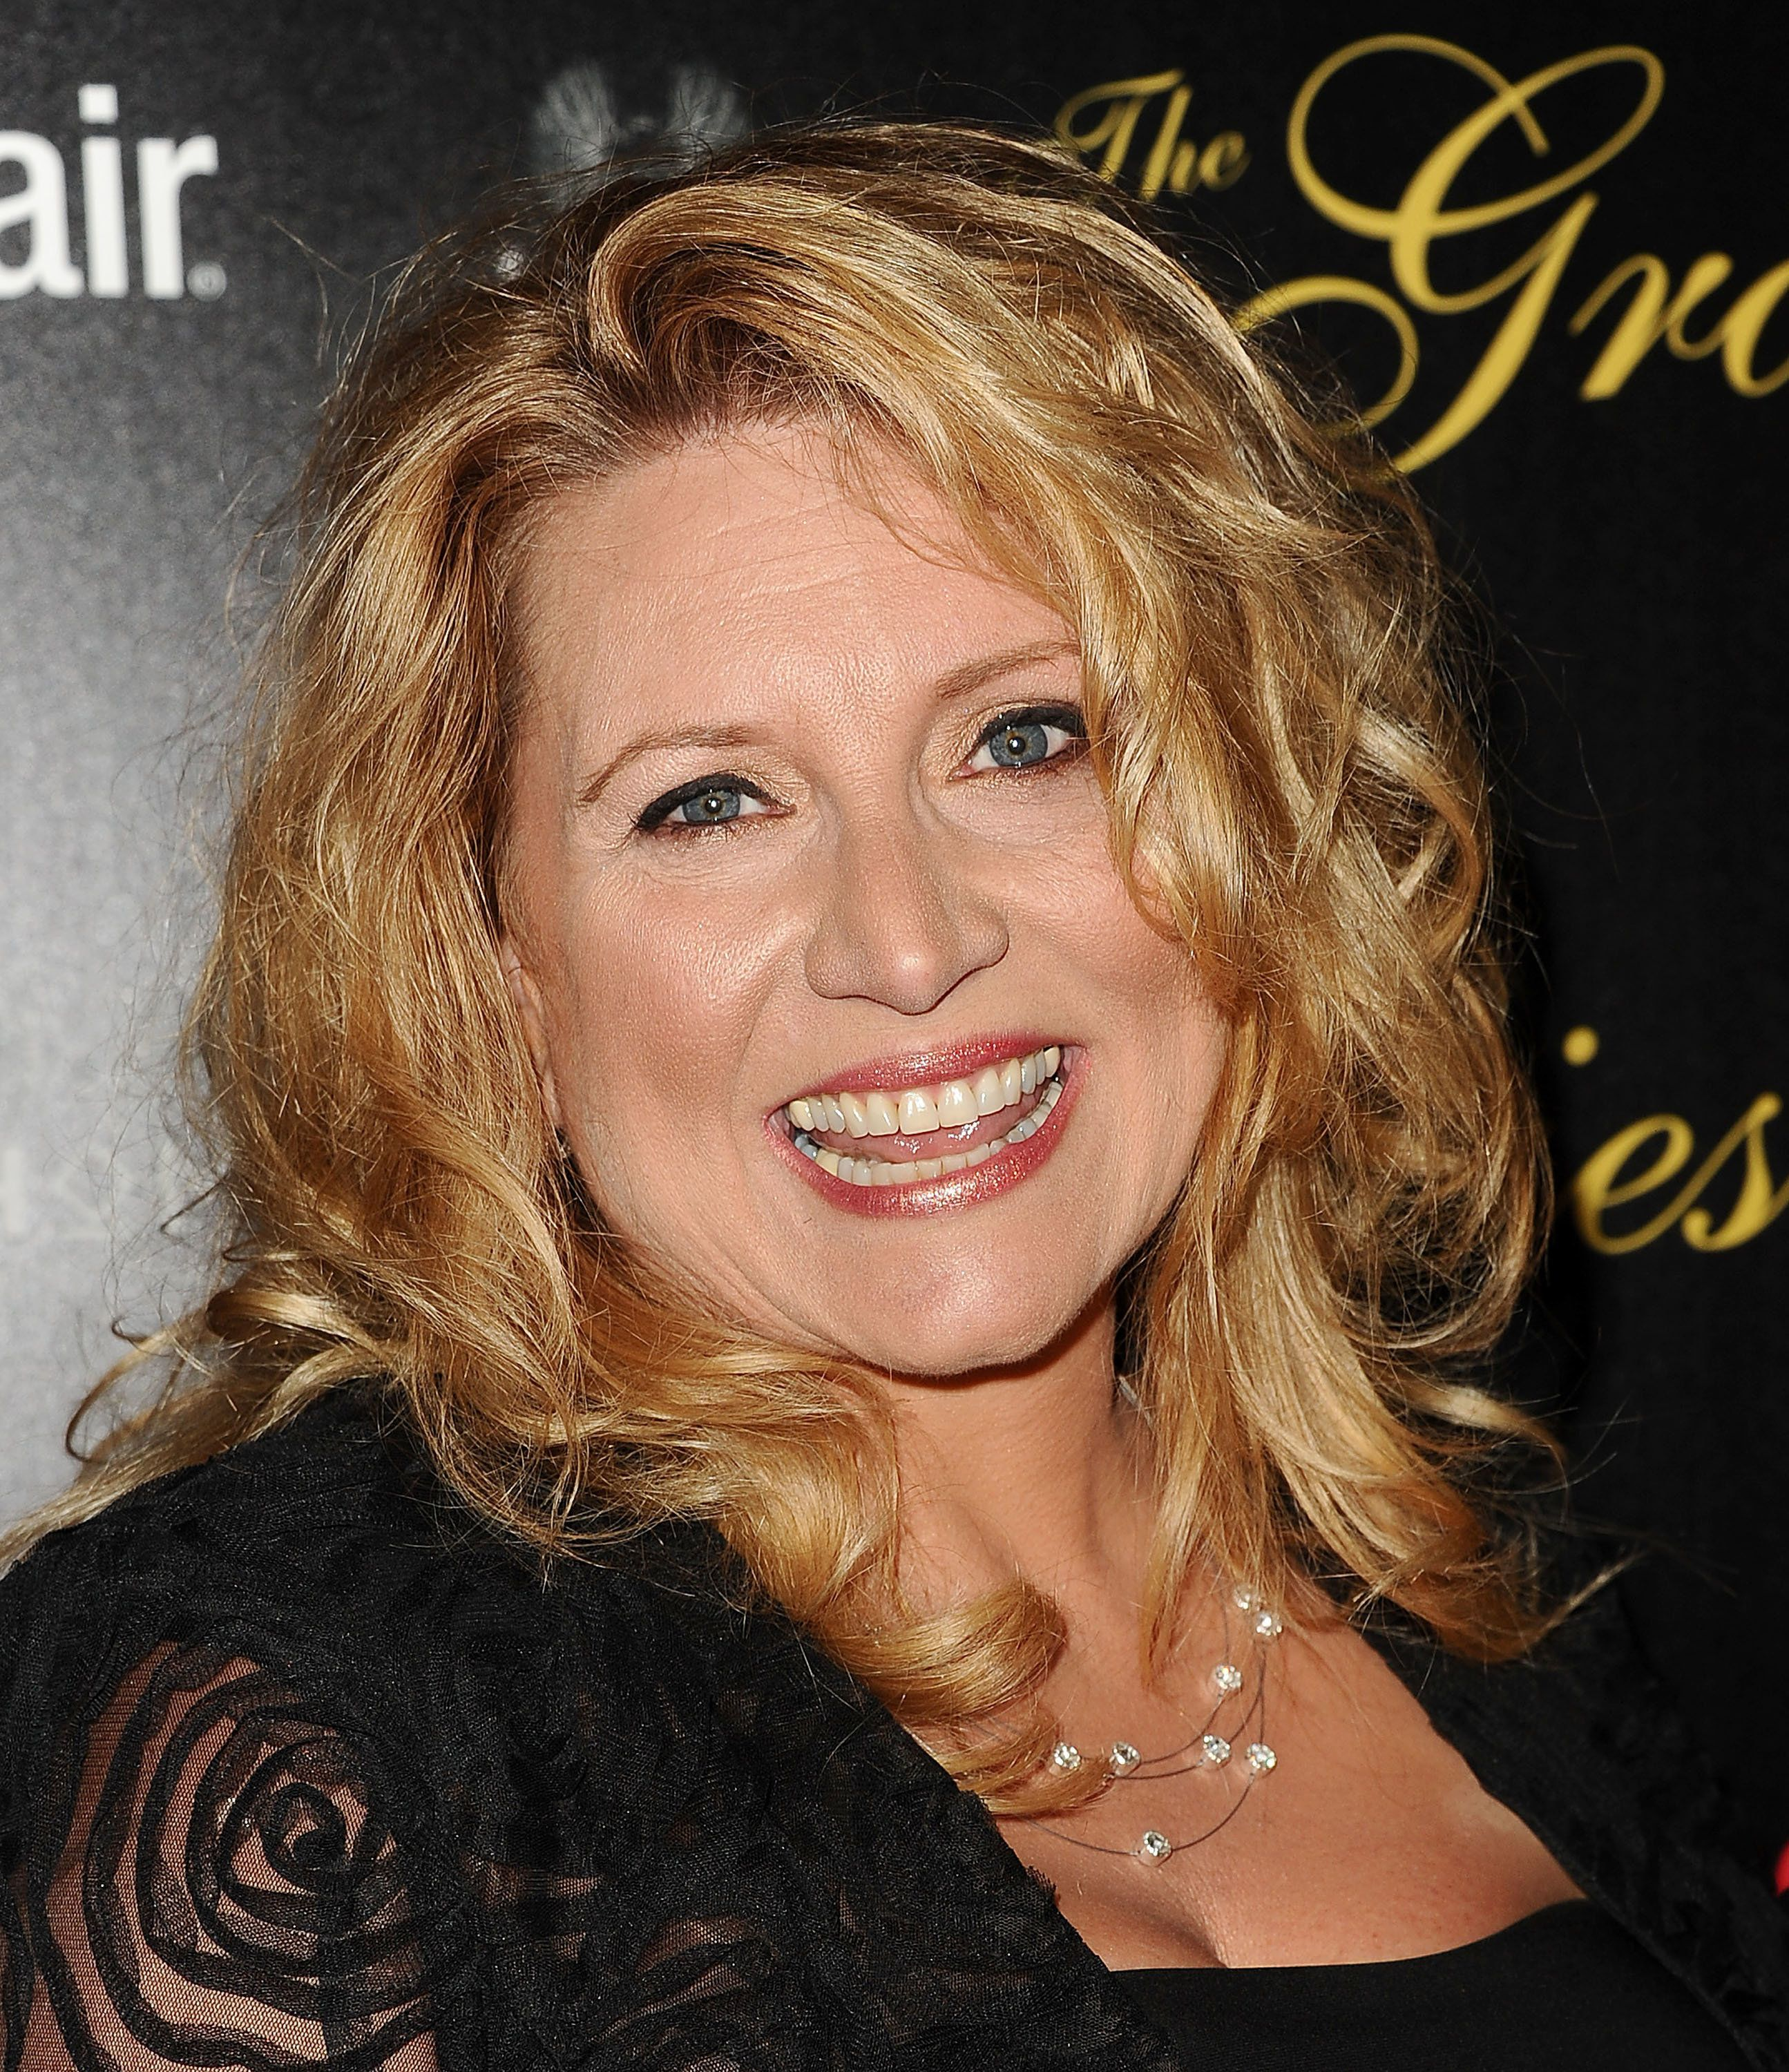 Radio Host Delilah Says Her Son Has Died After 'Battling Depression'